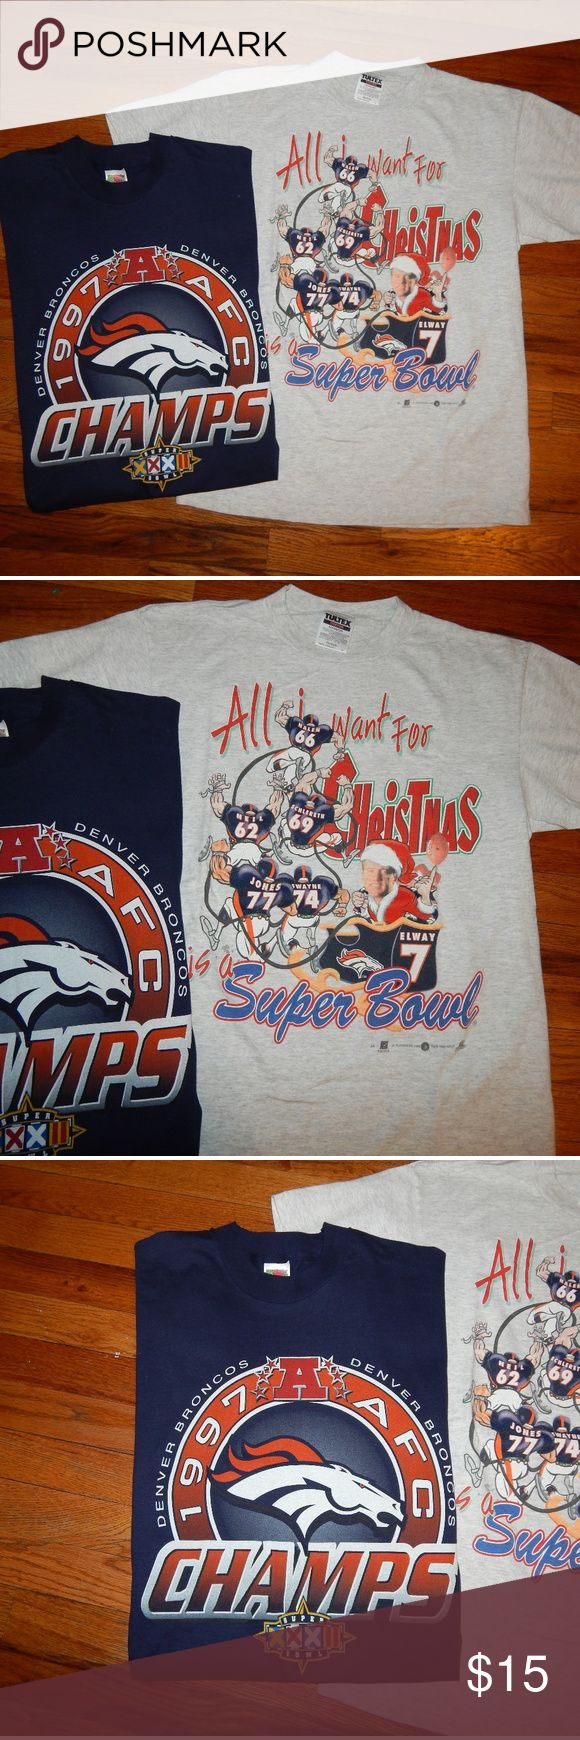 """1997 Denver Broncos T-shirt Bundle Vintage 1997 Dener Broncos 2 piece t-shirt bundle. Both pieces are men's size Medium message for measurements. The price posted is to take both of the t-shirts in the cover photo. Bundle contains:  1. Vintage 1997 Denver Broncos championship t-shirt in a very solid 9/10 condition 2. Vintage Denver Broncos John Elway """"All I want for Christmas is a Super Bowl"""" t-shirt in 8/10 condition no major flaws just minor vintage wear.   Always willing to combine bundle…"""